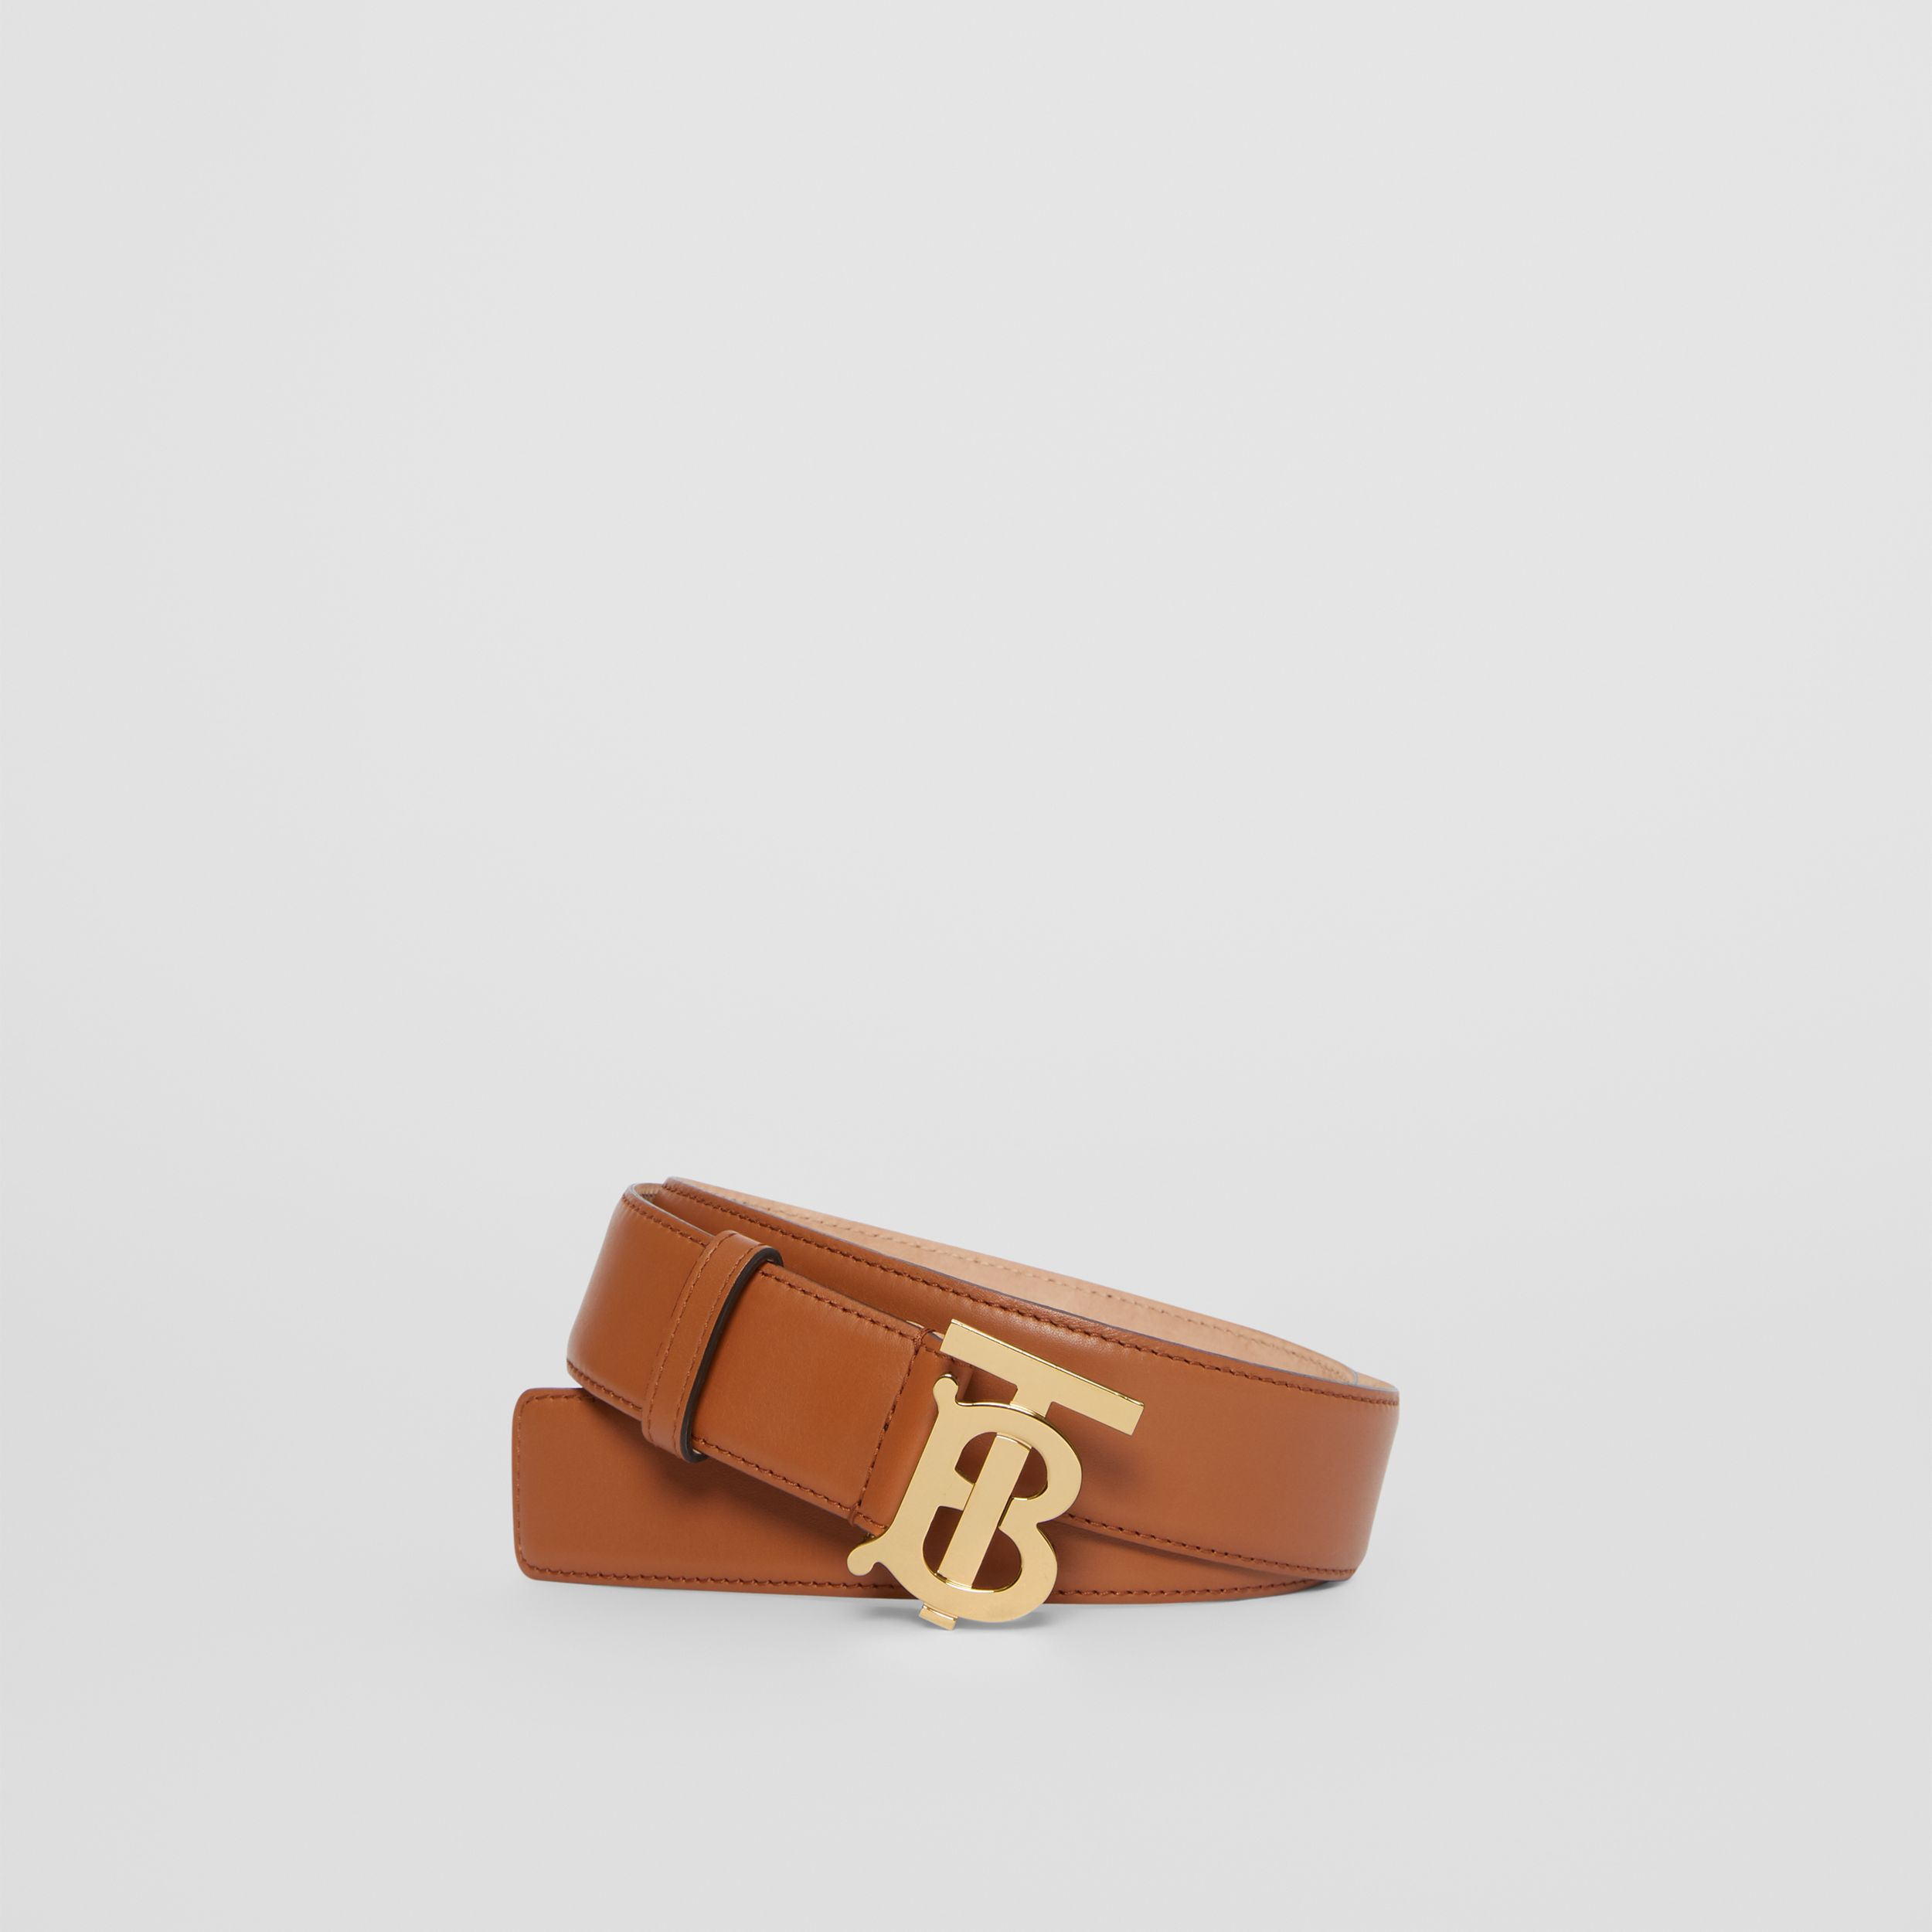 Monogram Motif Leather Belt in Tan - Women | Burberry - 1